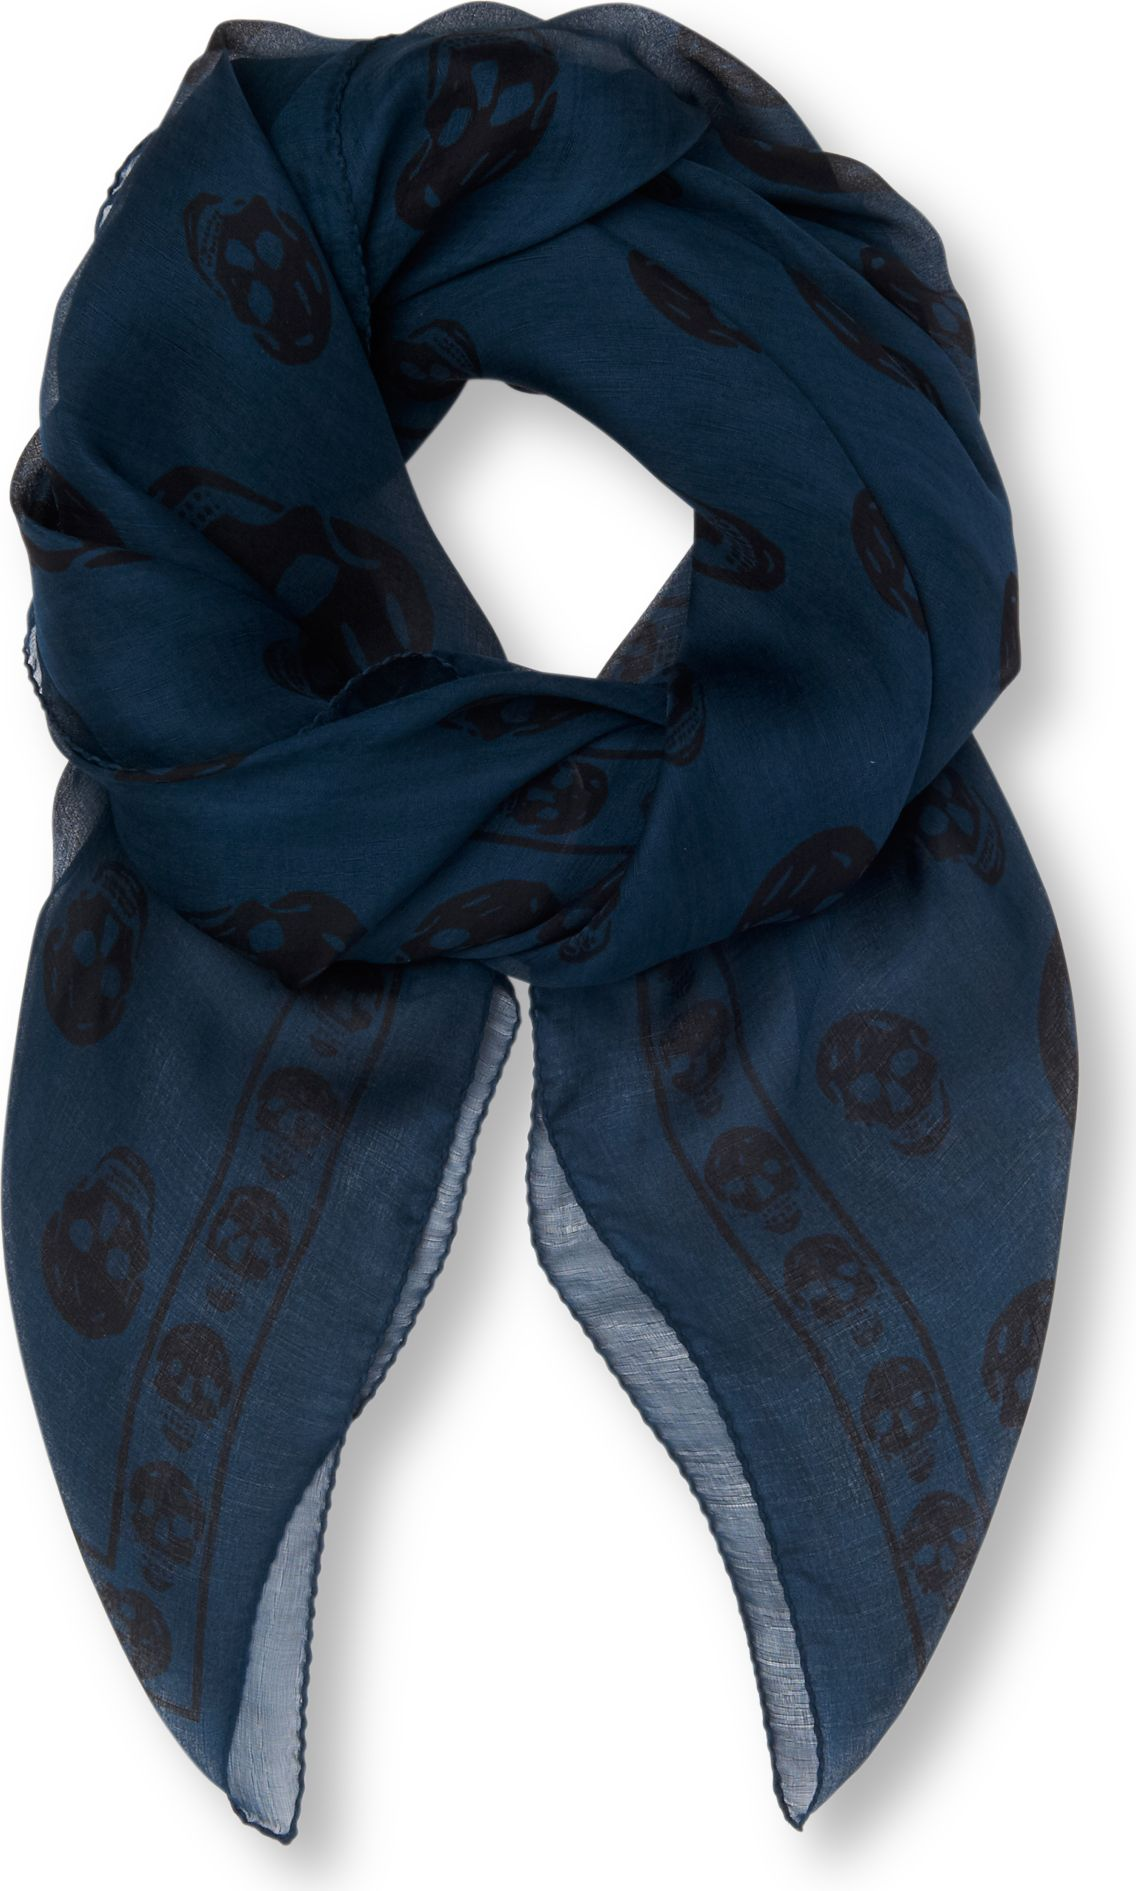 392ac5c8cd947 Navy Blue Alexander Mcqueen Scarf - Collections Blue Images